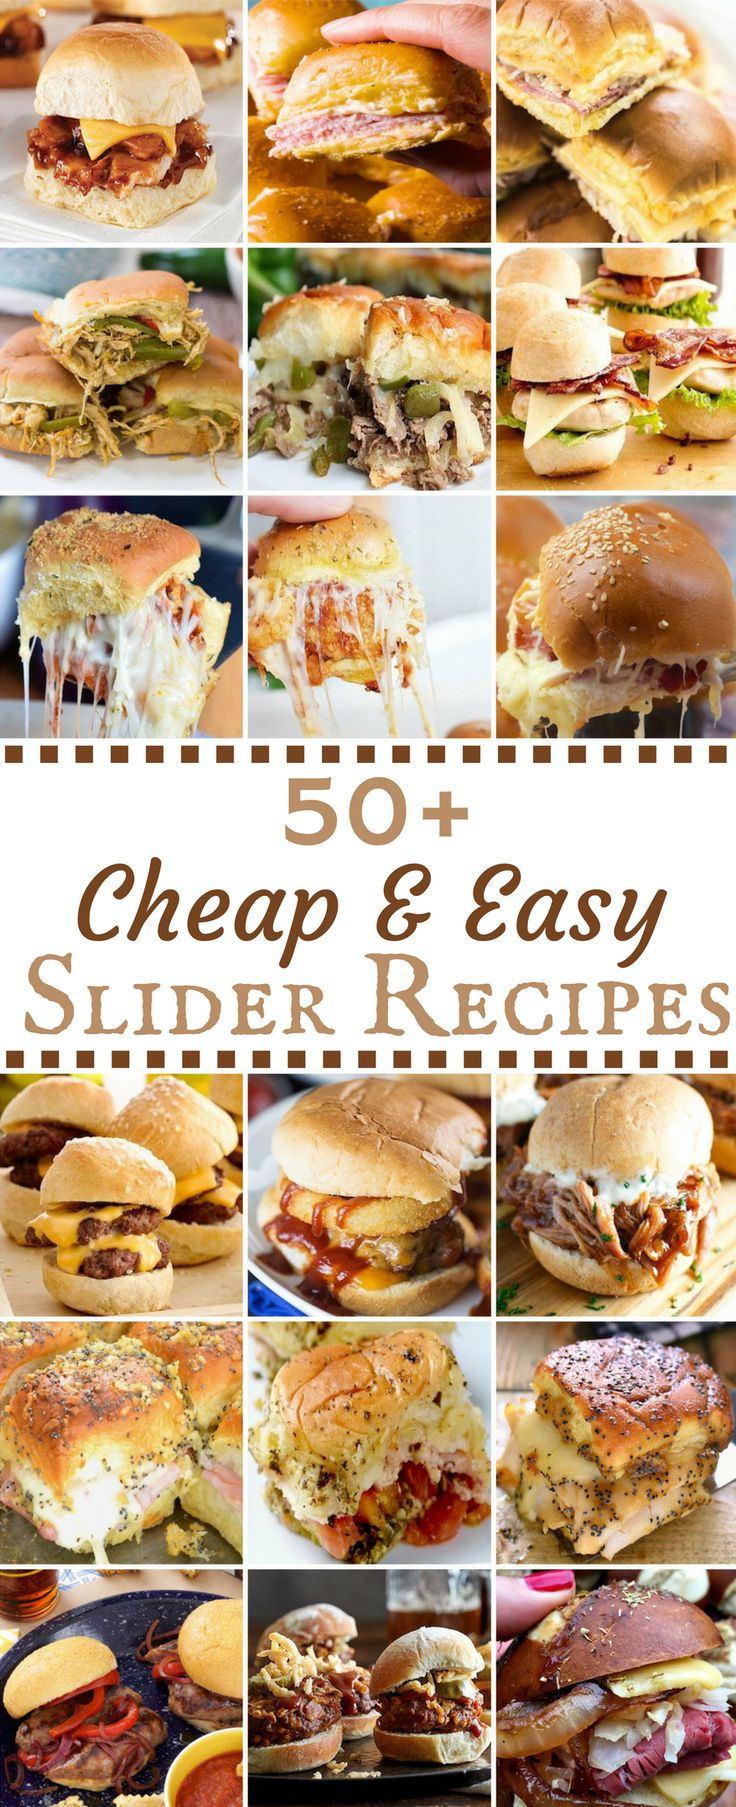 50 Cheap & Easy Slider Recipes